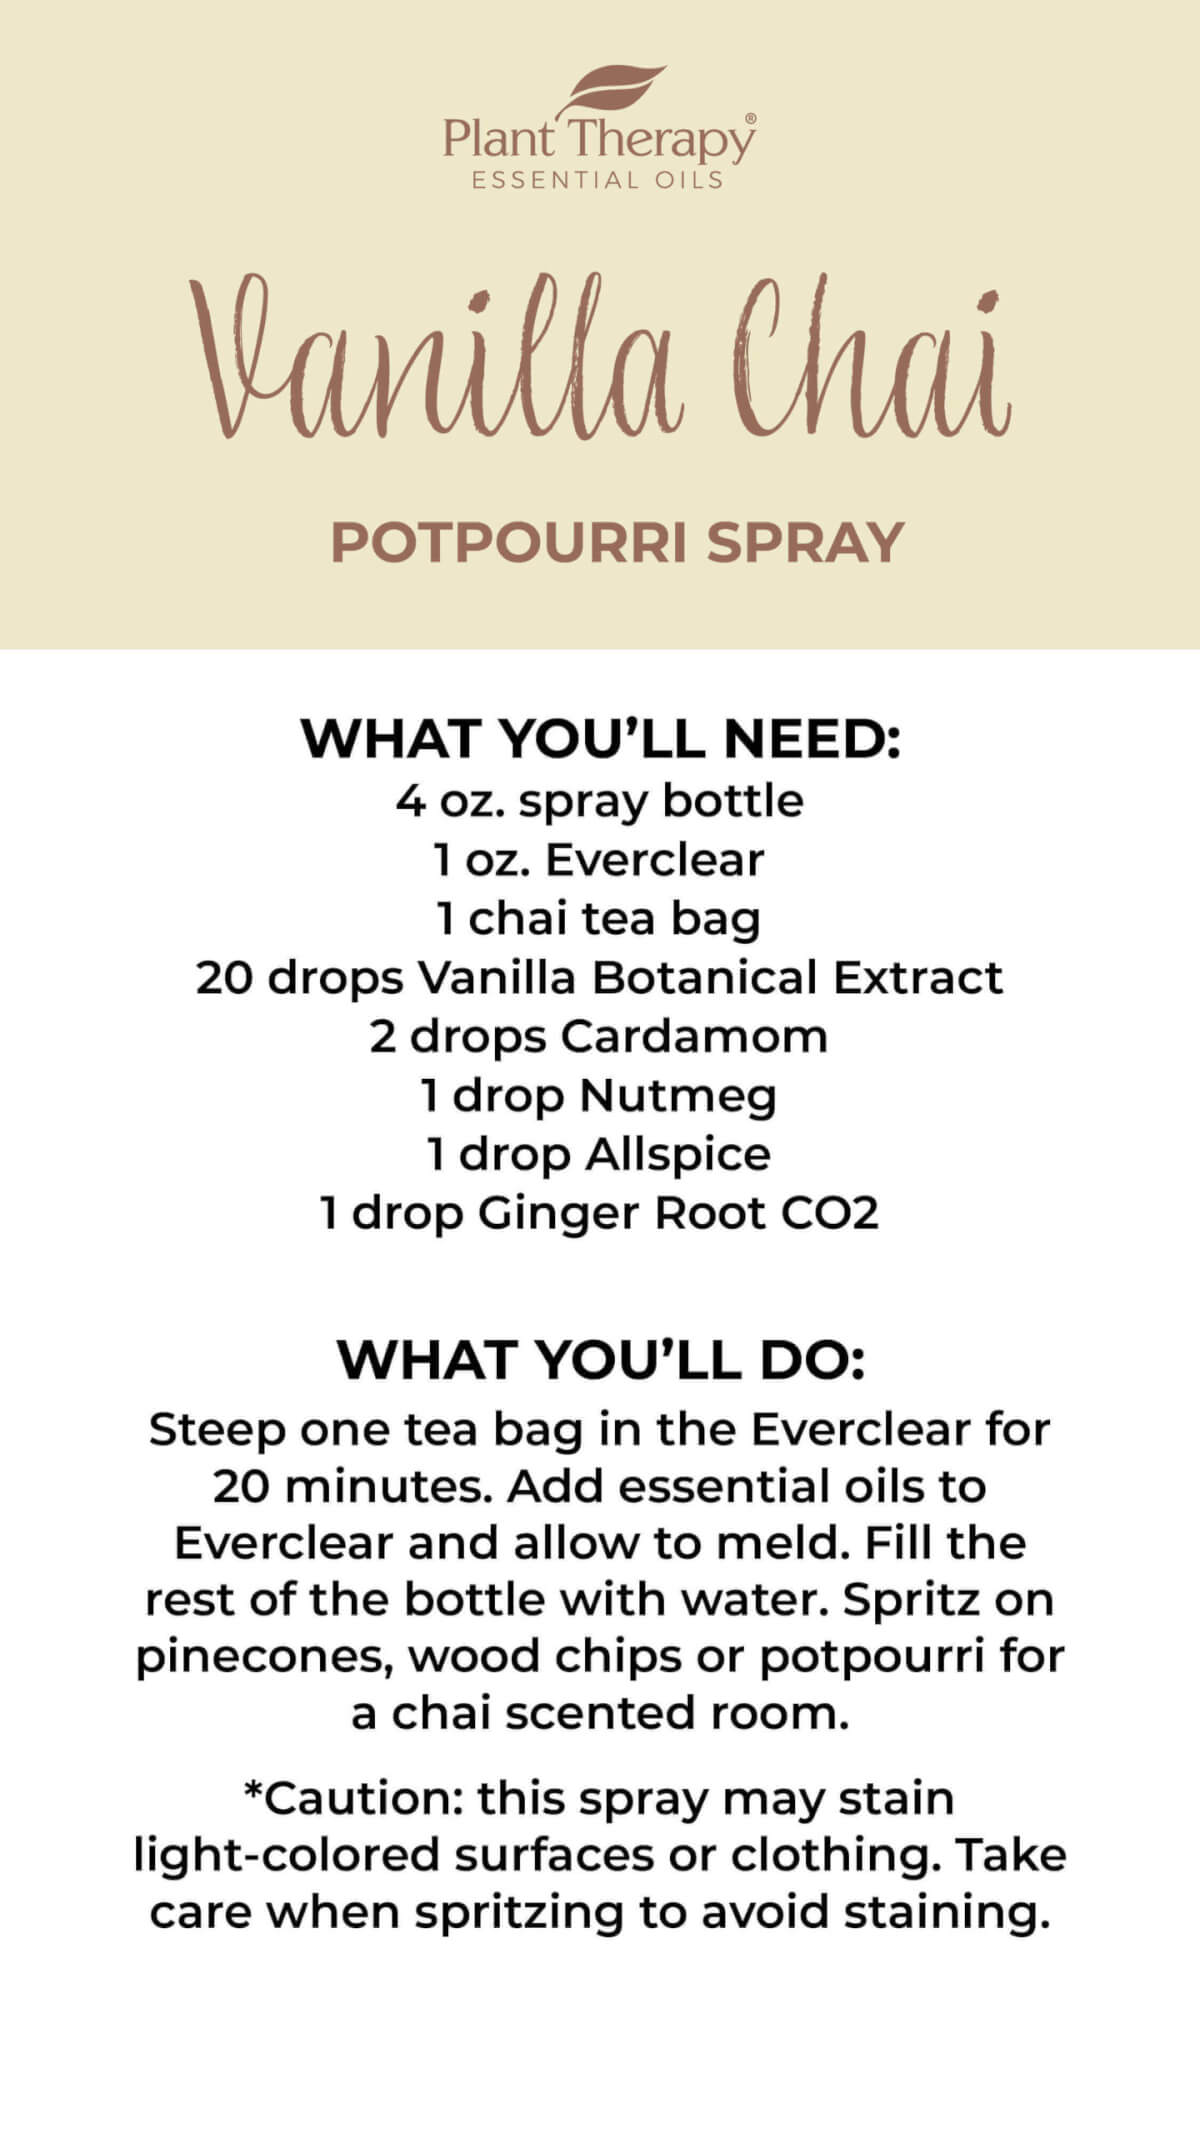 Vanilla Chai Potpourri Spray Instructions